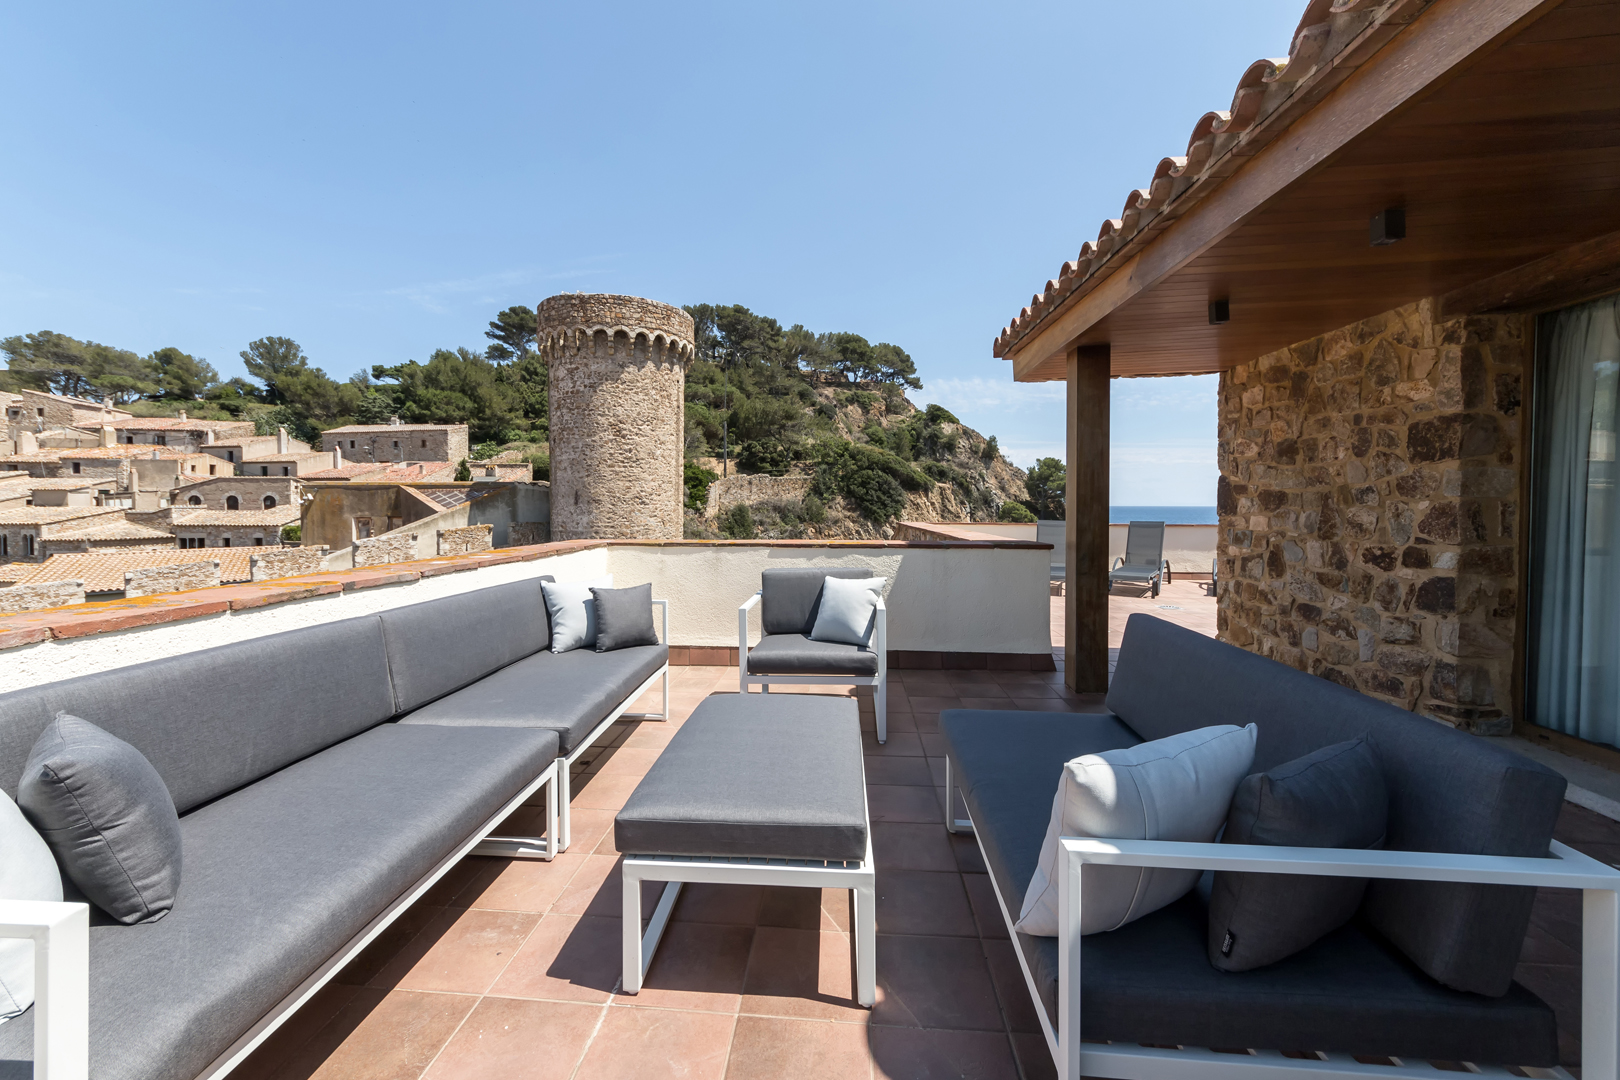 Terrace area with sofas